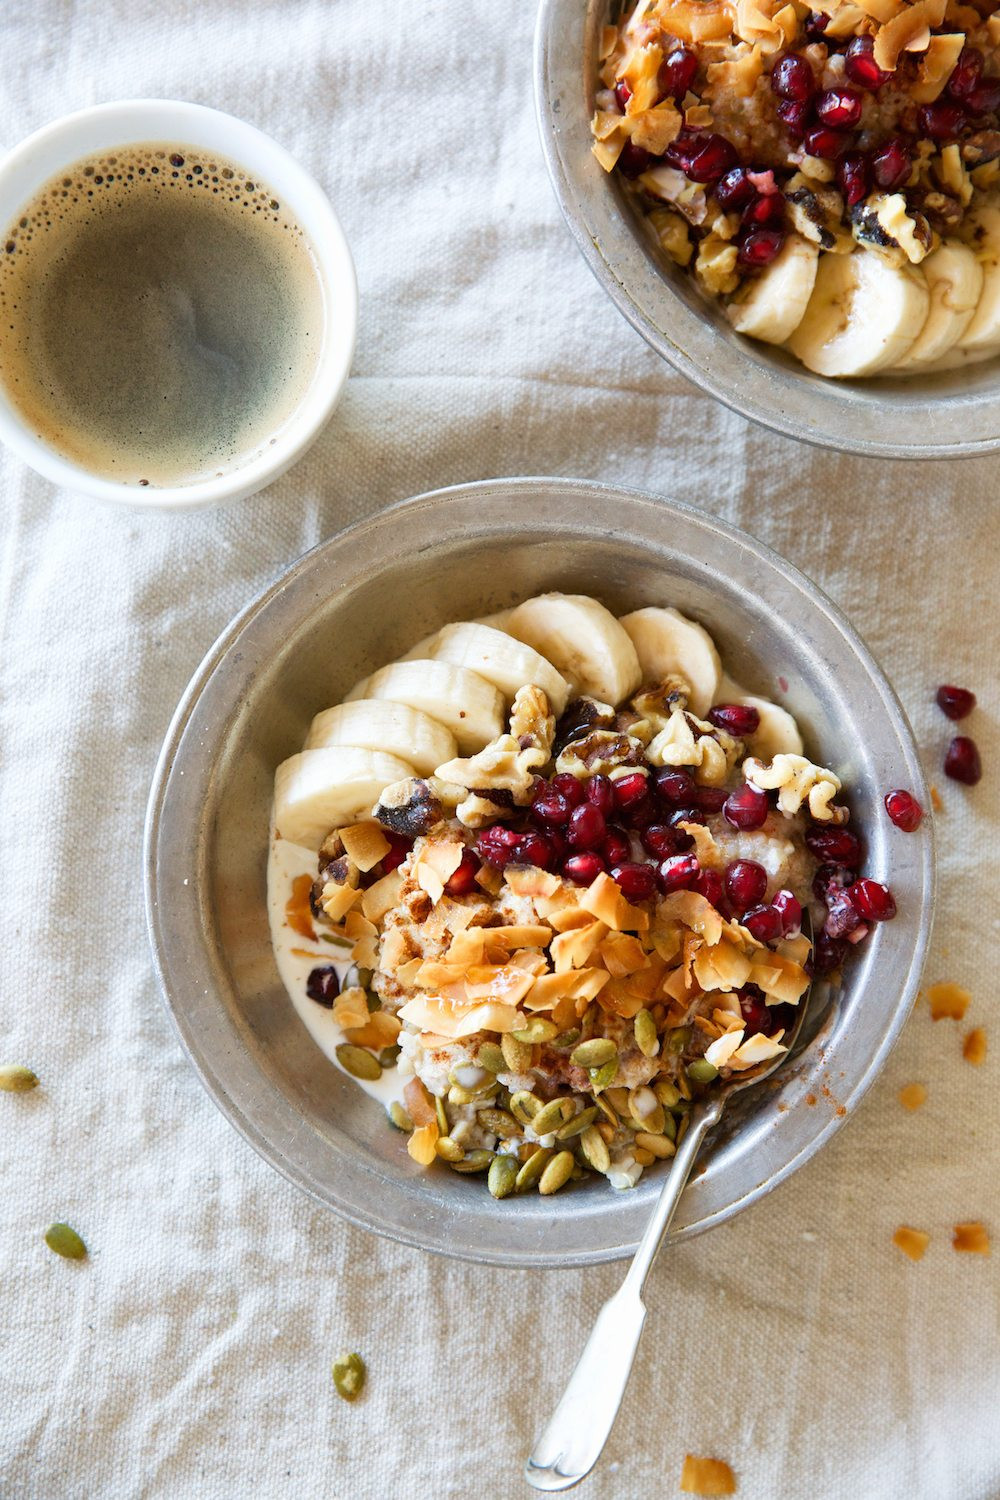 Healthy Oatmeal Breakfast 12 Healthy Breakfast Recipes to Shake Up Your Morning